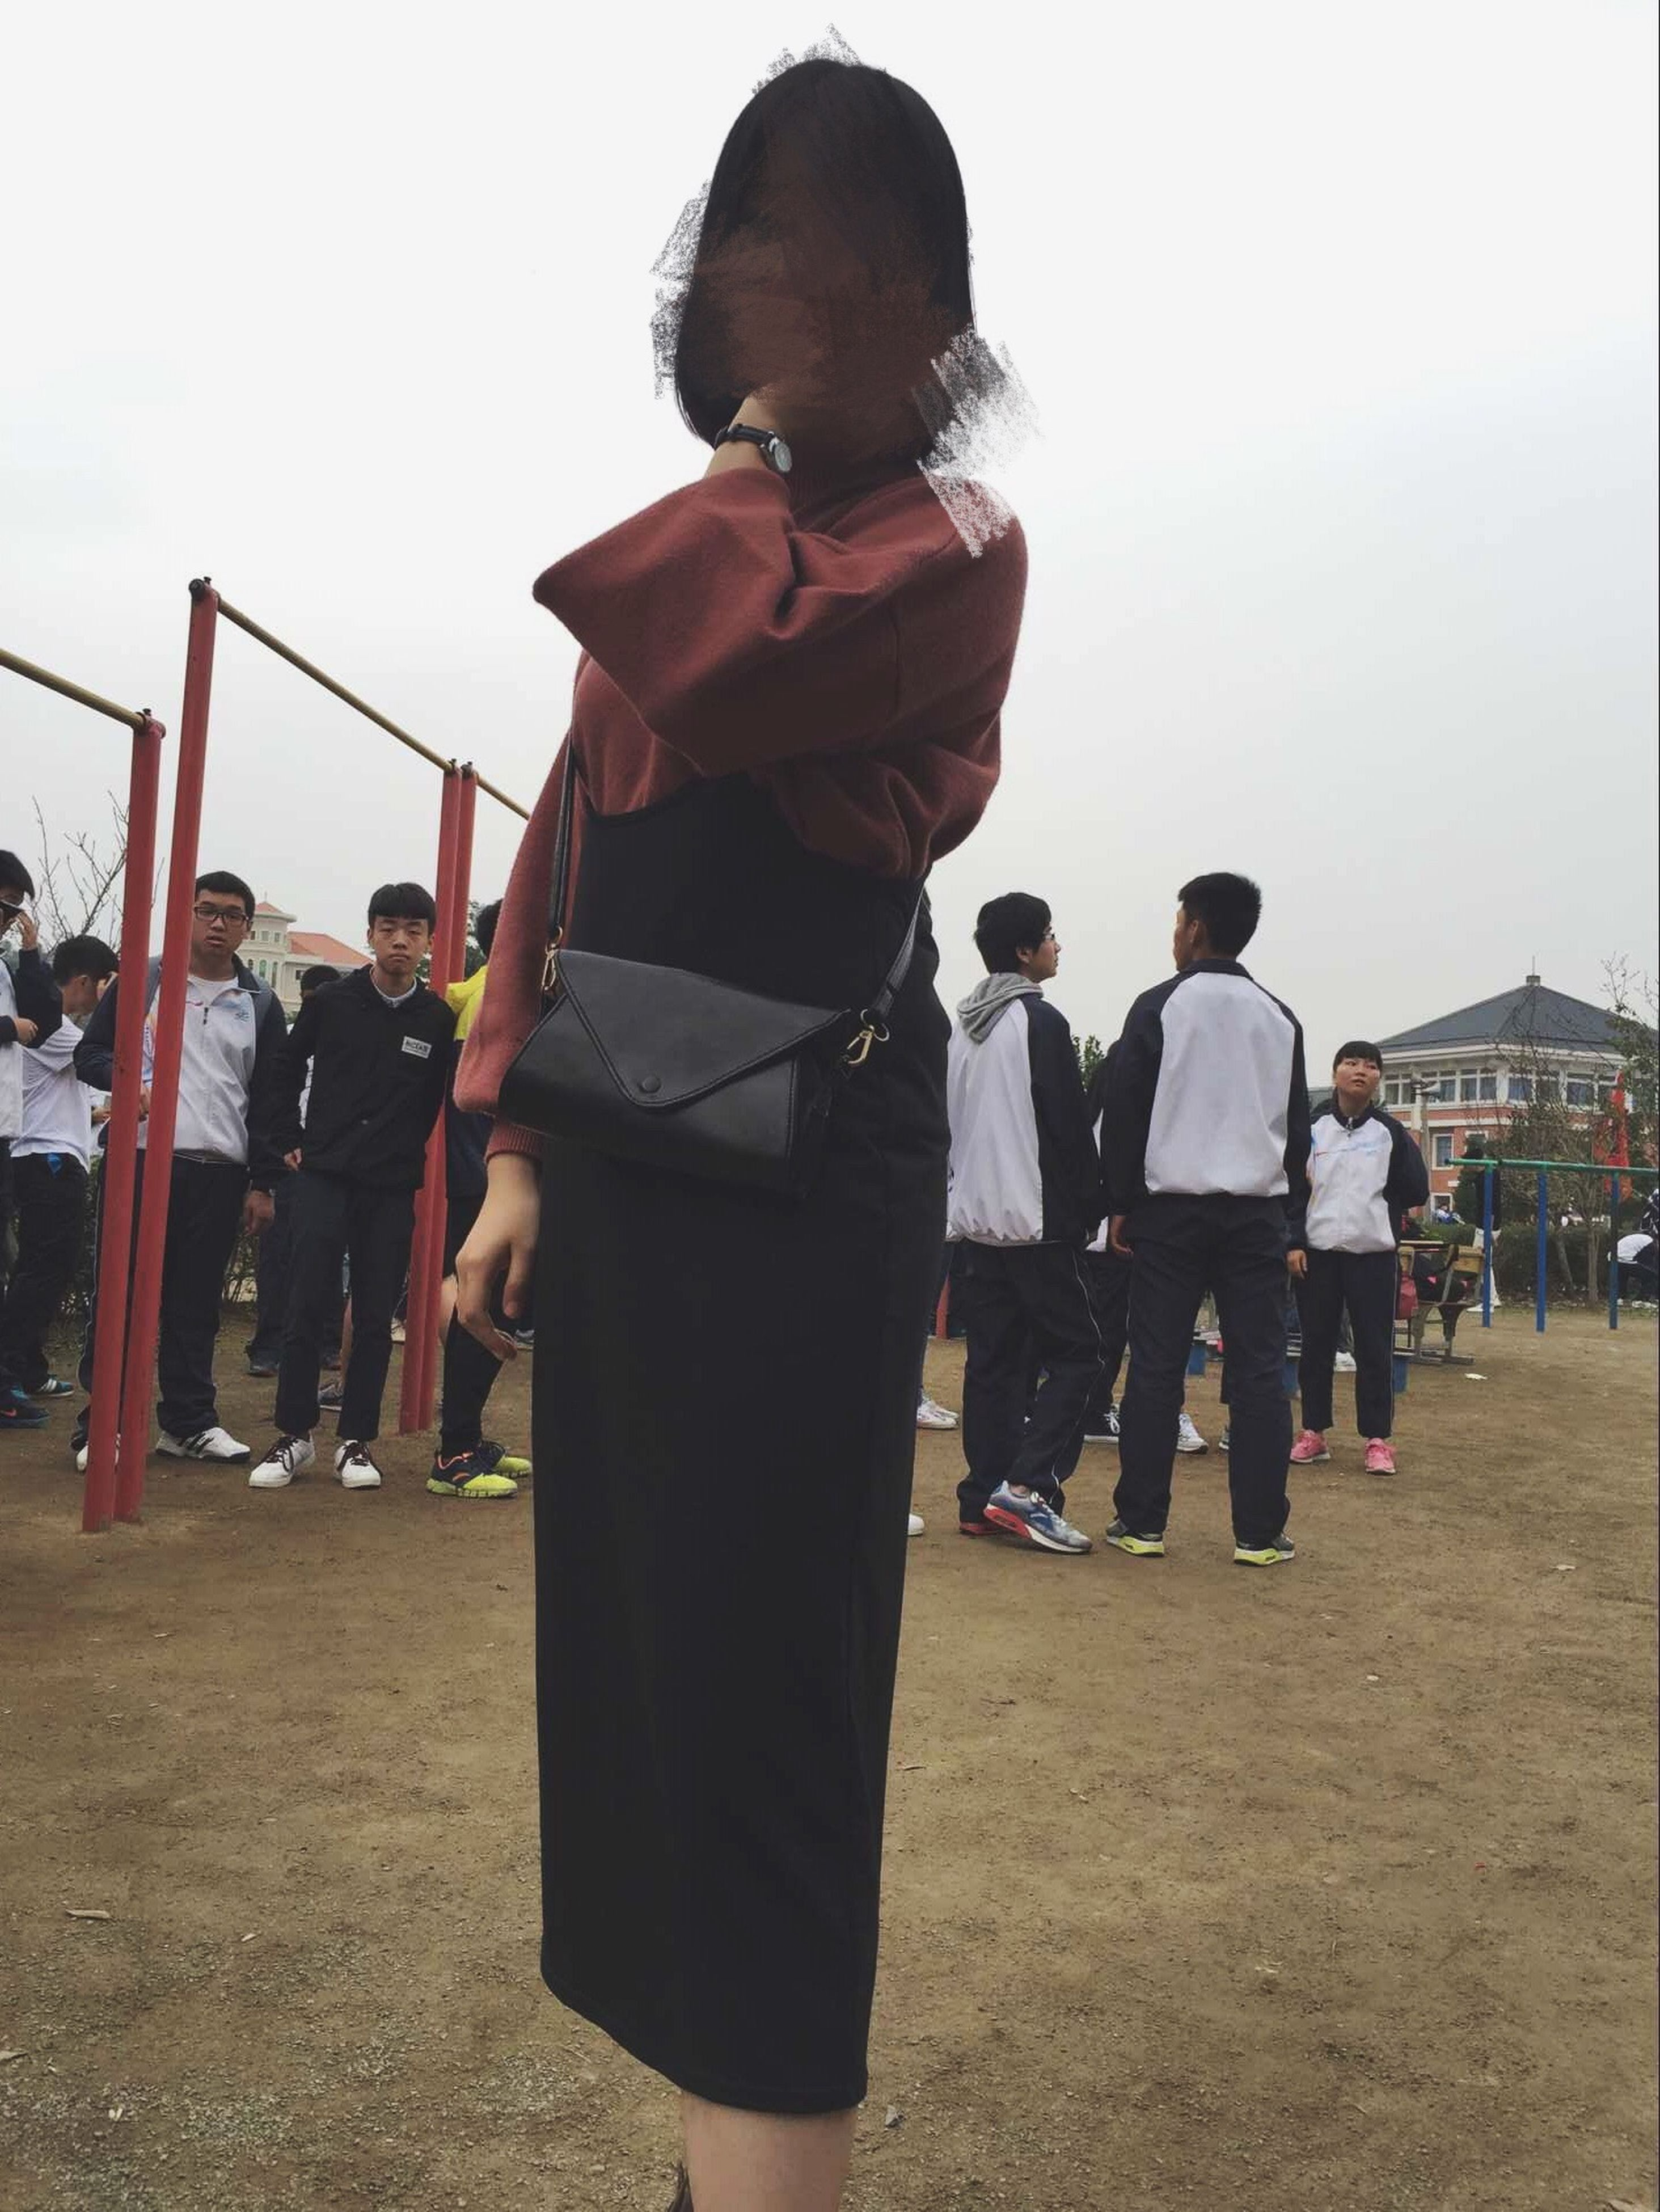 lifestyles, leisure activity, casual clothing, men, full length, togetherness, standing, love, rear view, person, sky, walking, bonding, boys, friendship, built structure, large group of people, day